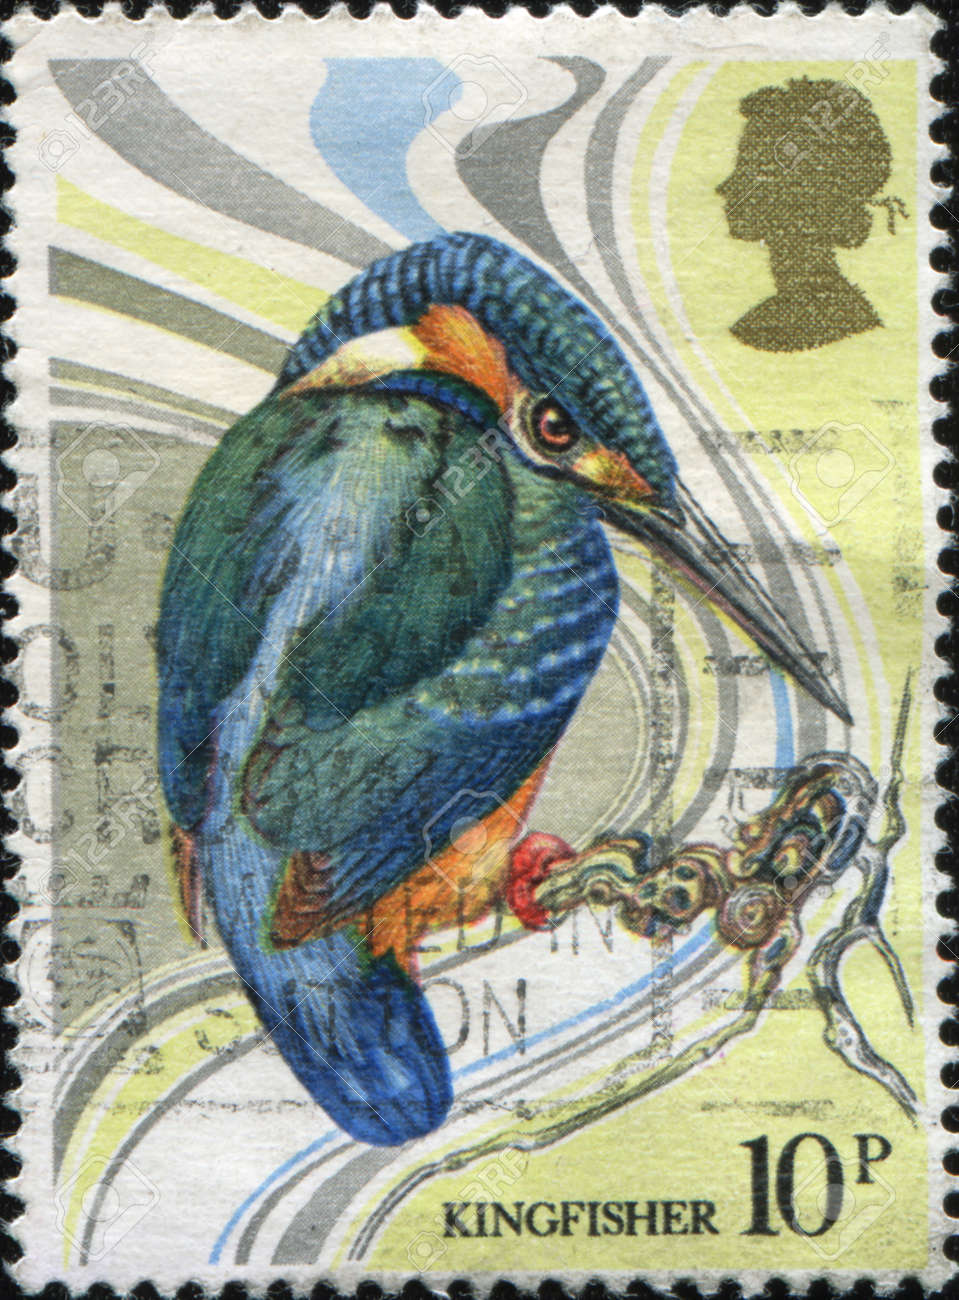 GREAT BRITAIN - CIRCA 1980: A stamp printed in Great Britain shows Common Kingfisher - Alcedo atthis, circa 1980 Stock Photo - 9293128